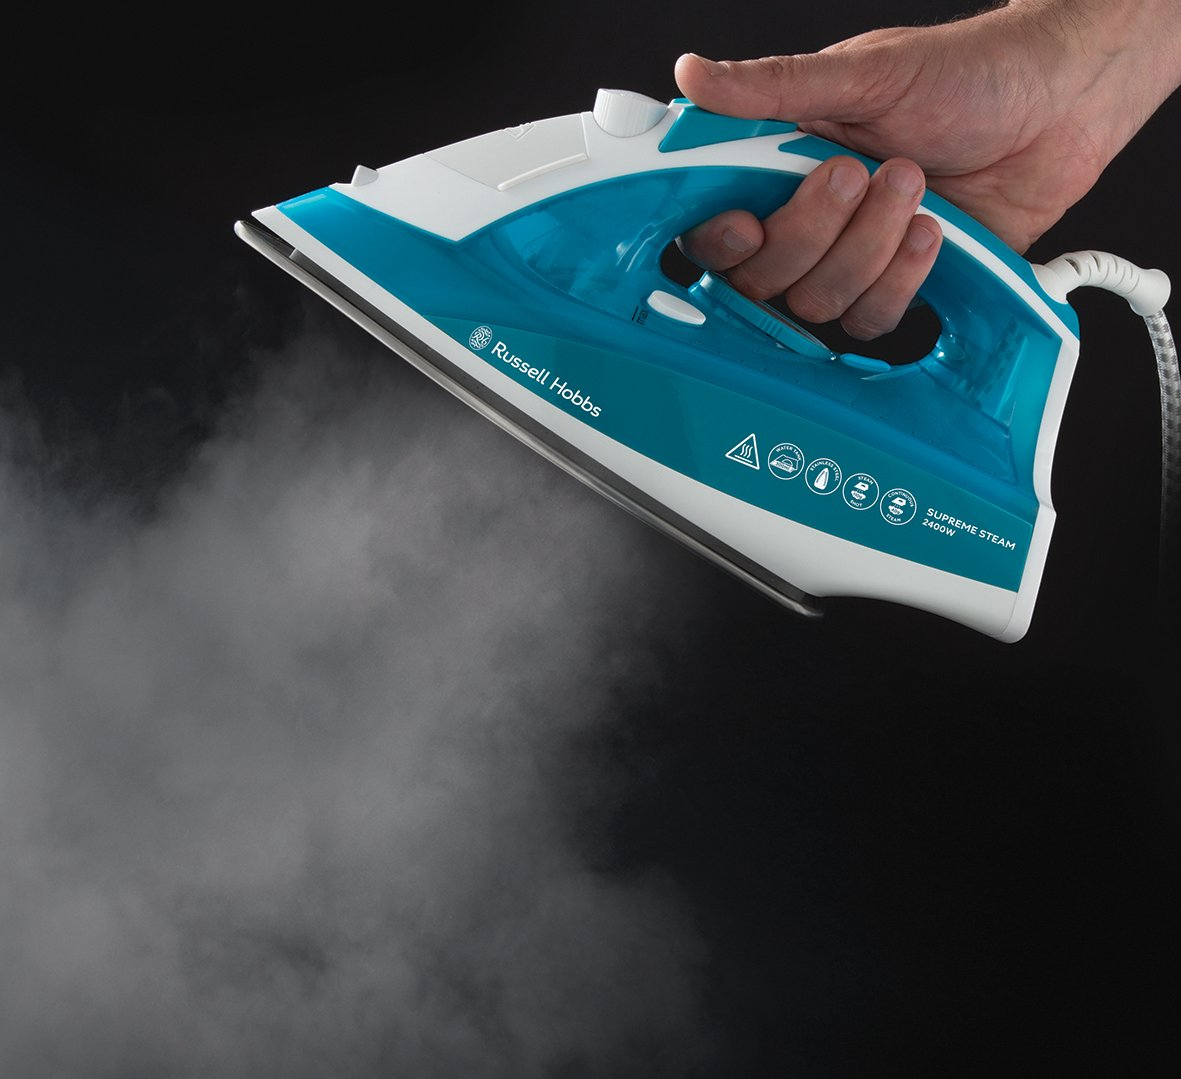 Pros and cons of the steam iron